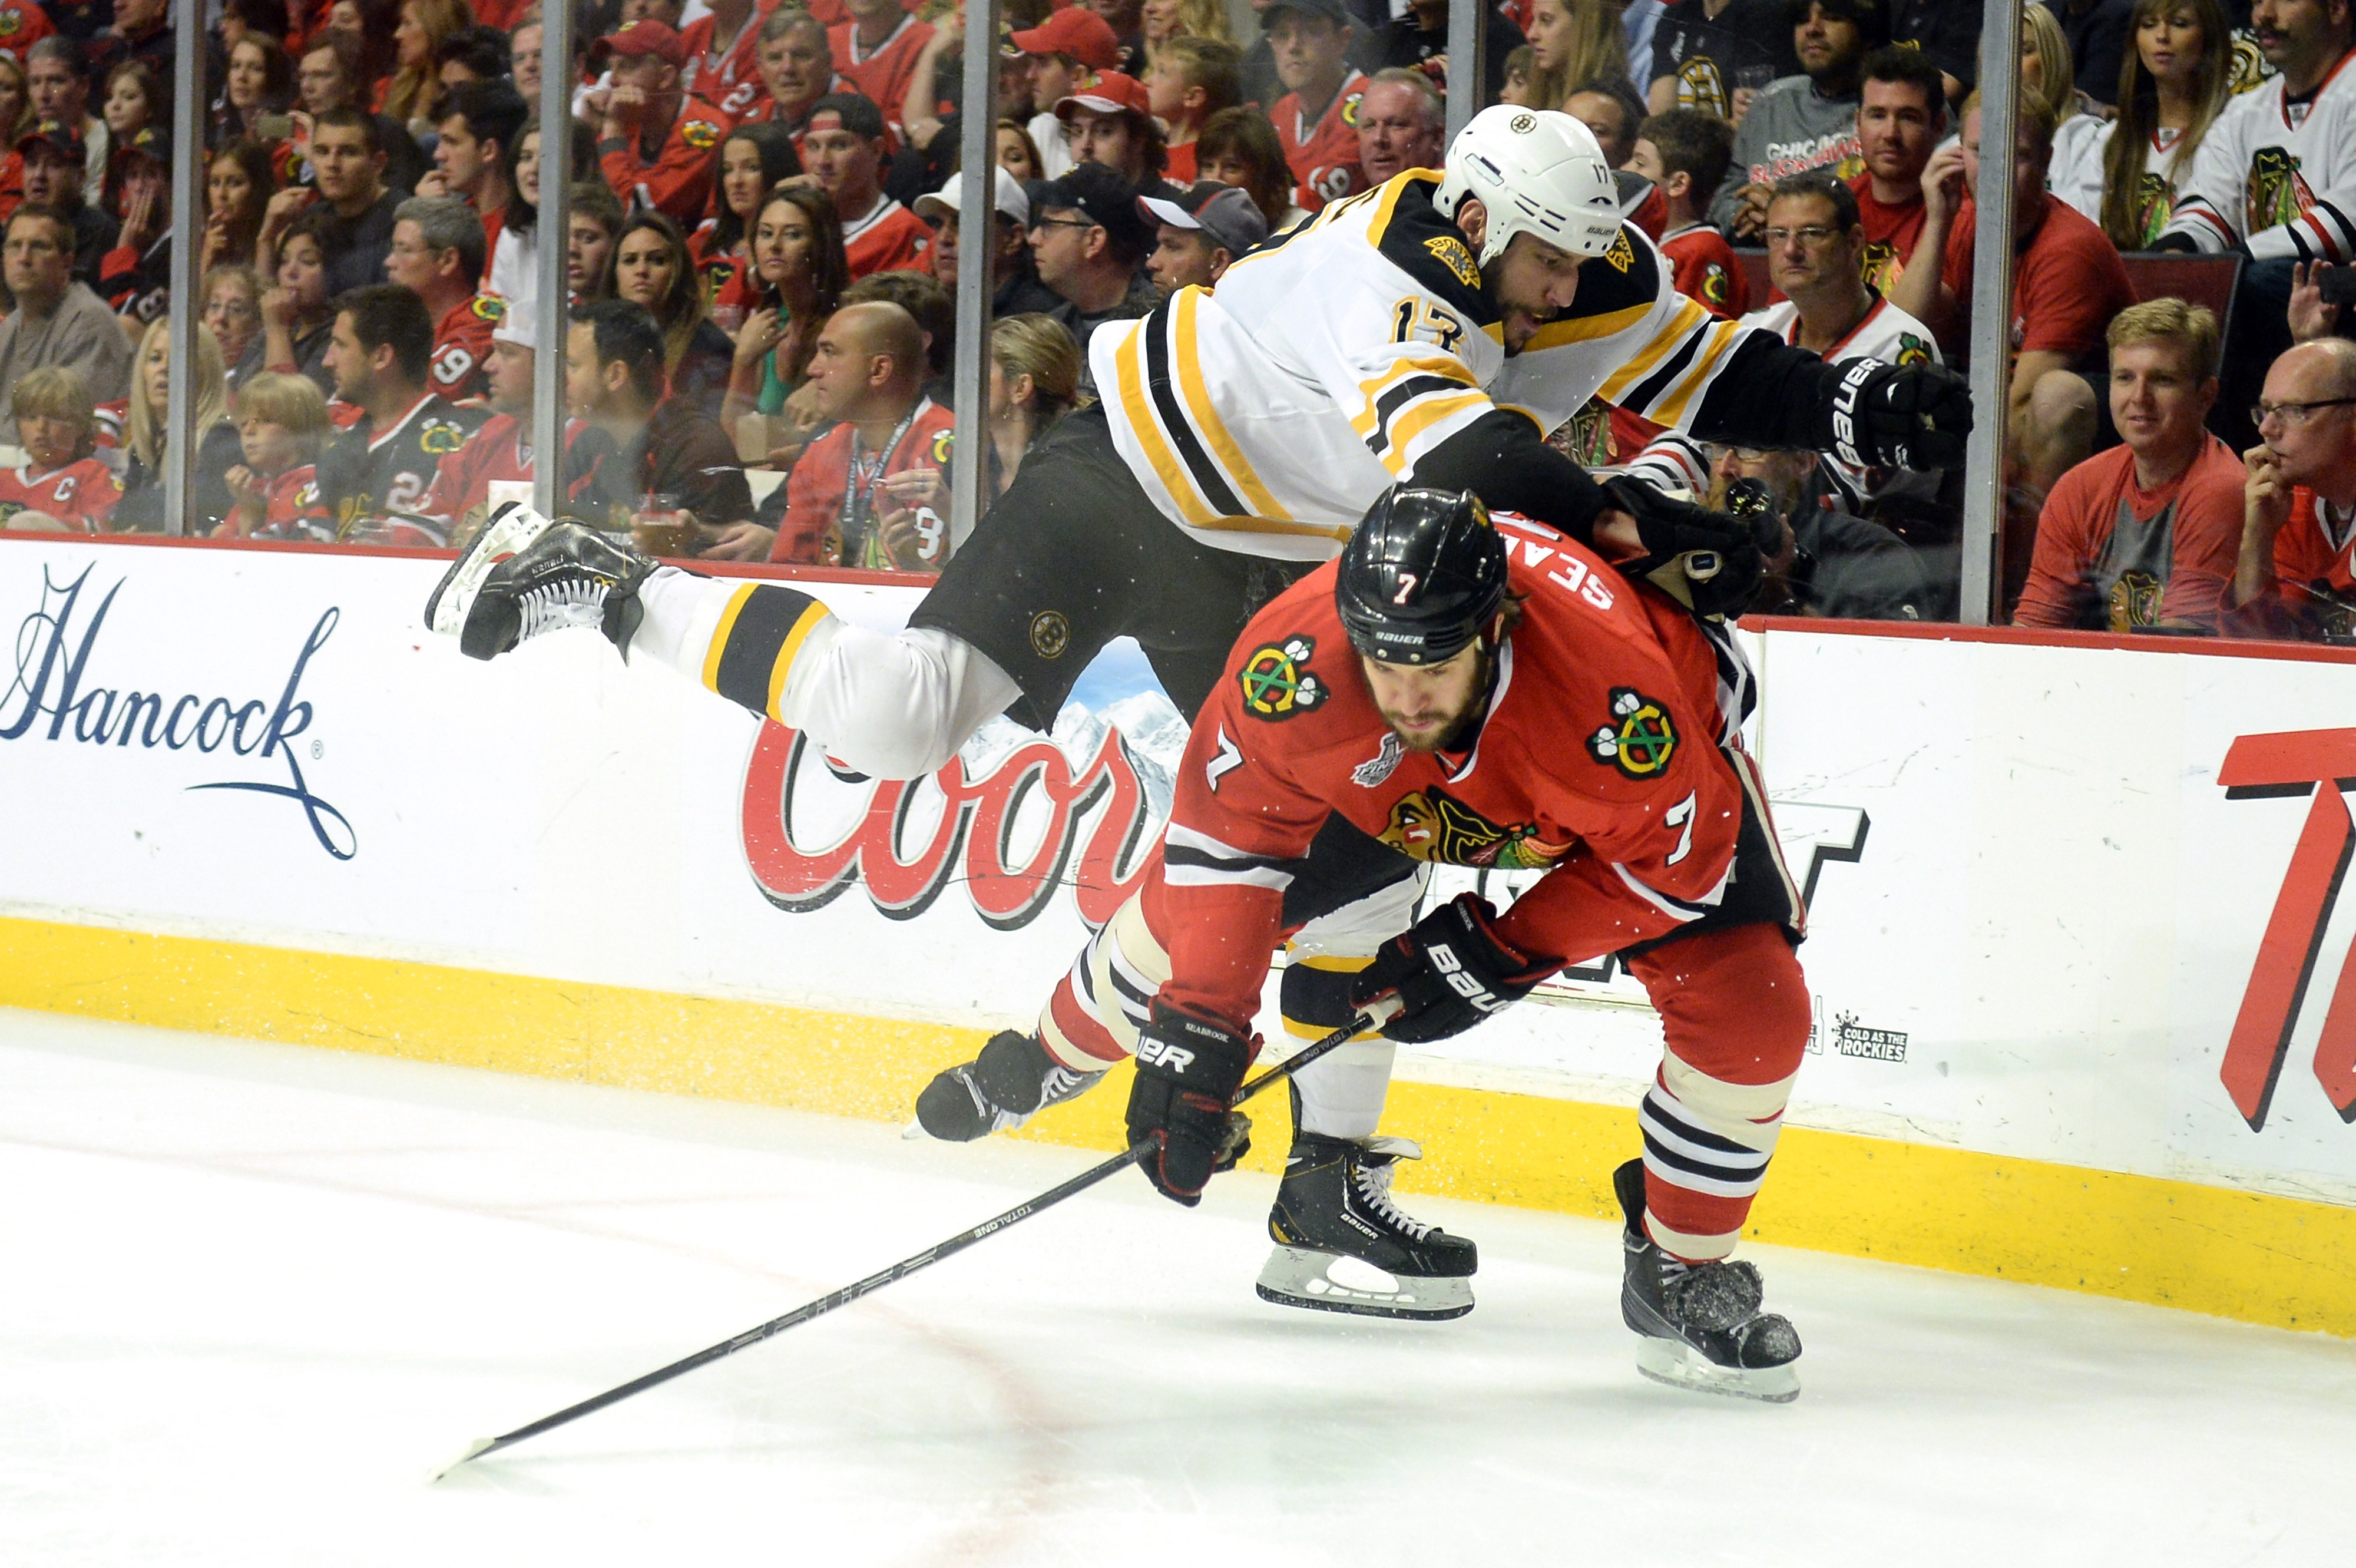 Blackhawks vs. Bruins, Stanley Cup Final Game 6: Chicago looks to win Cup in Boston